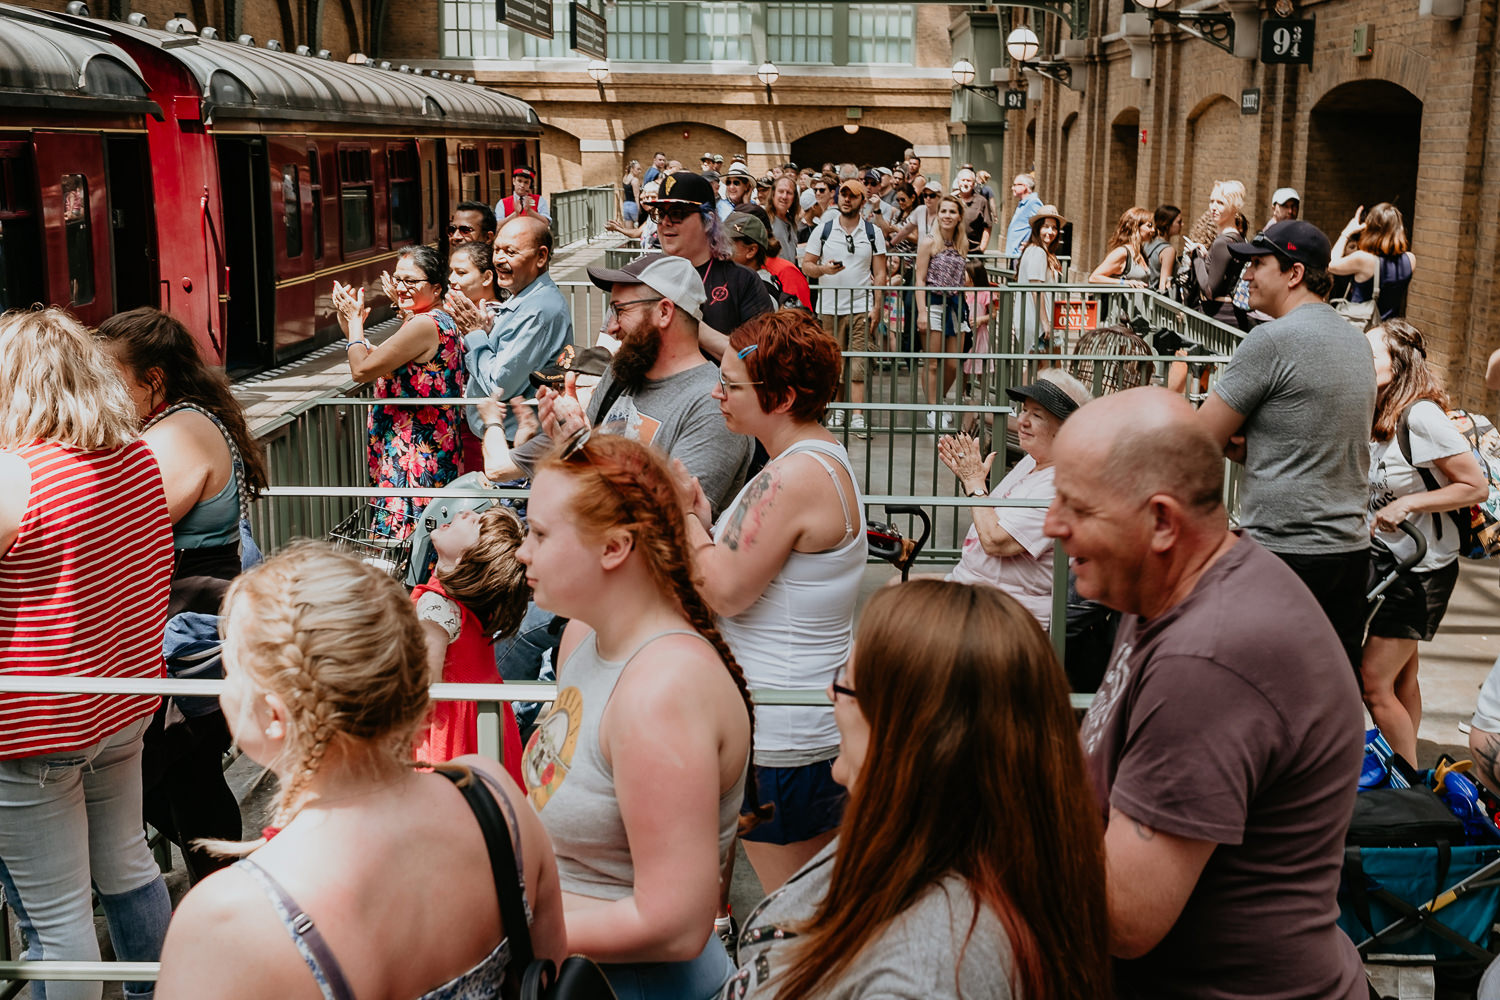 view of crowd at Hogwarts Express link all cheering and applauding